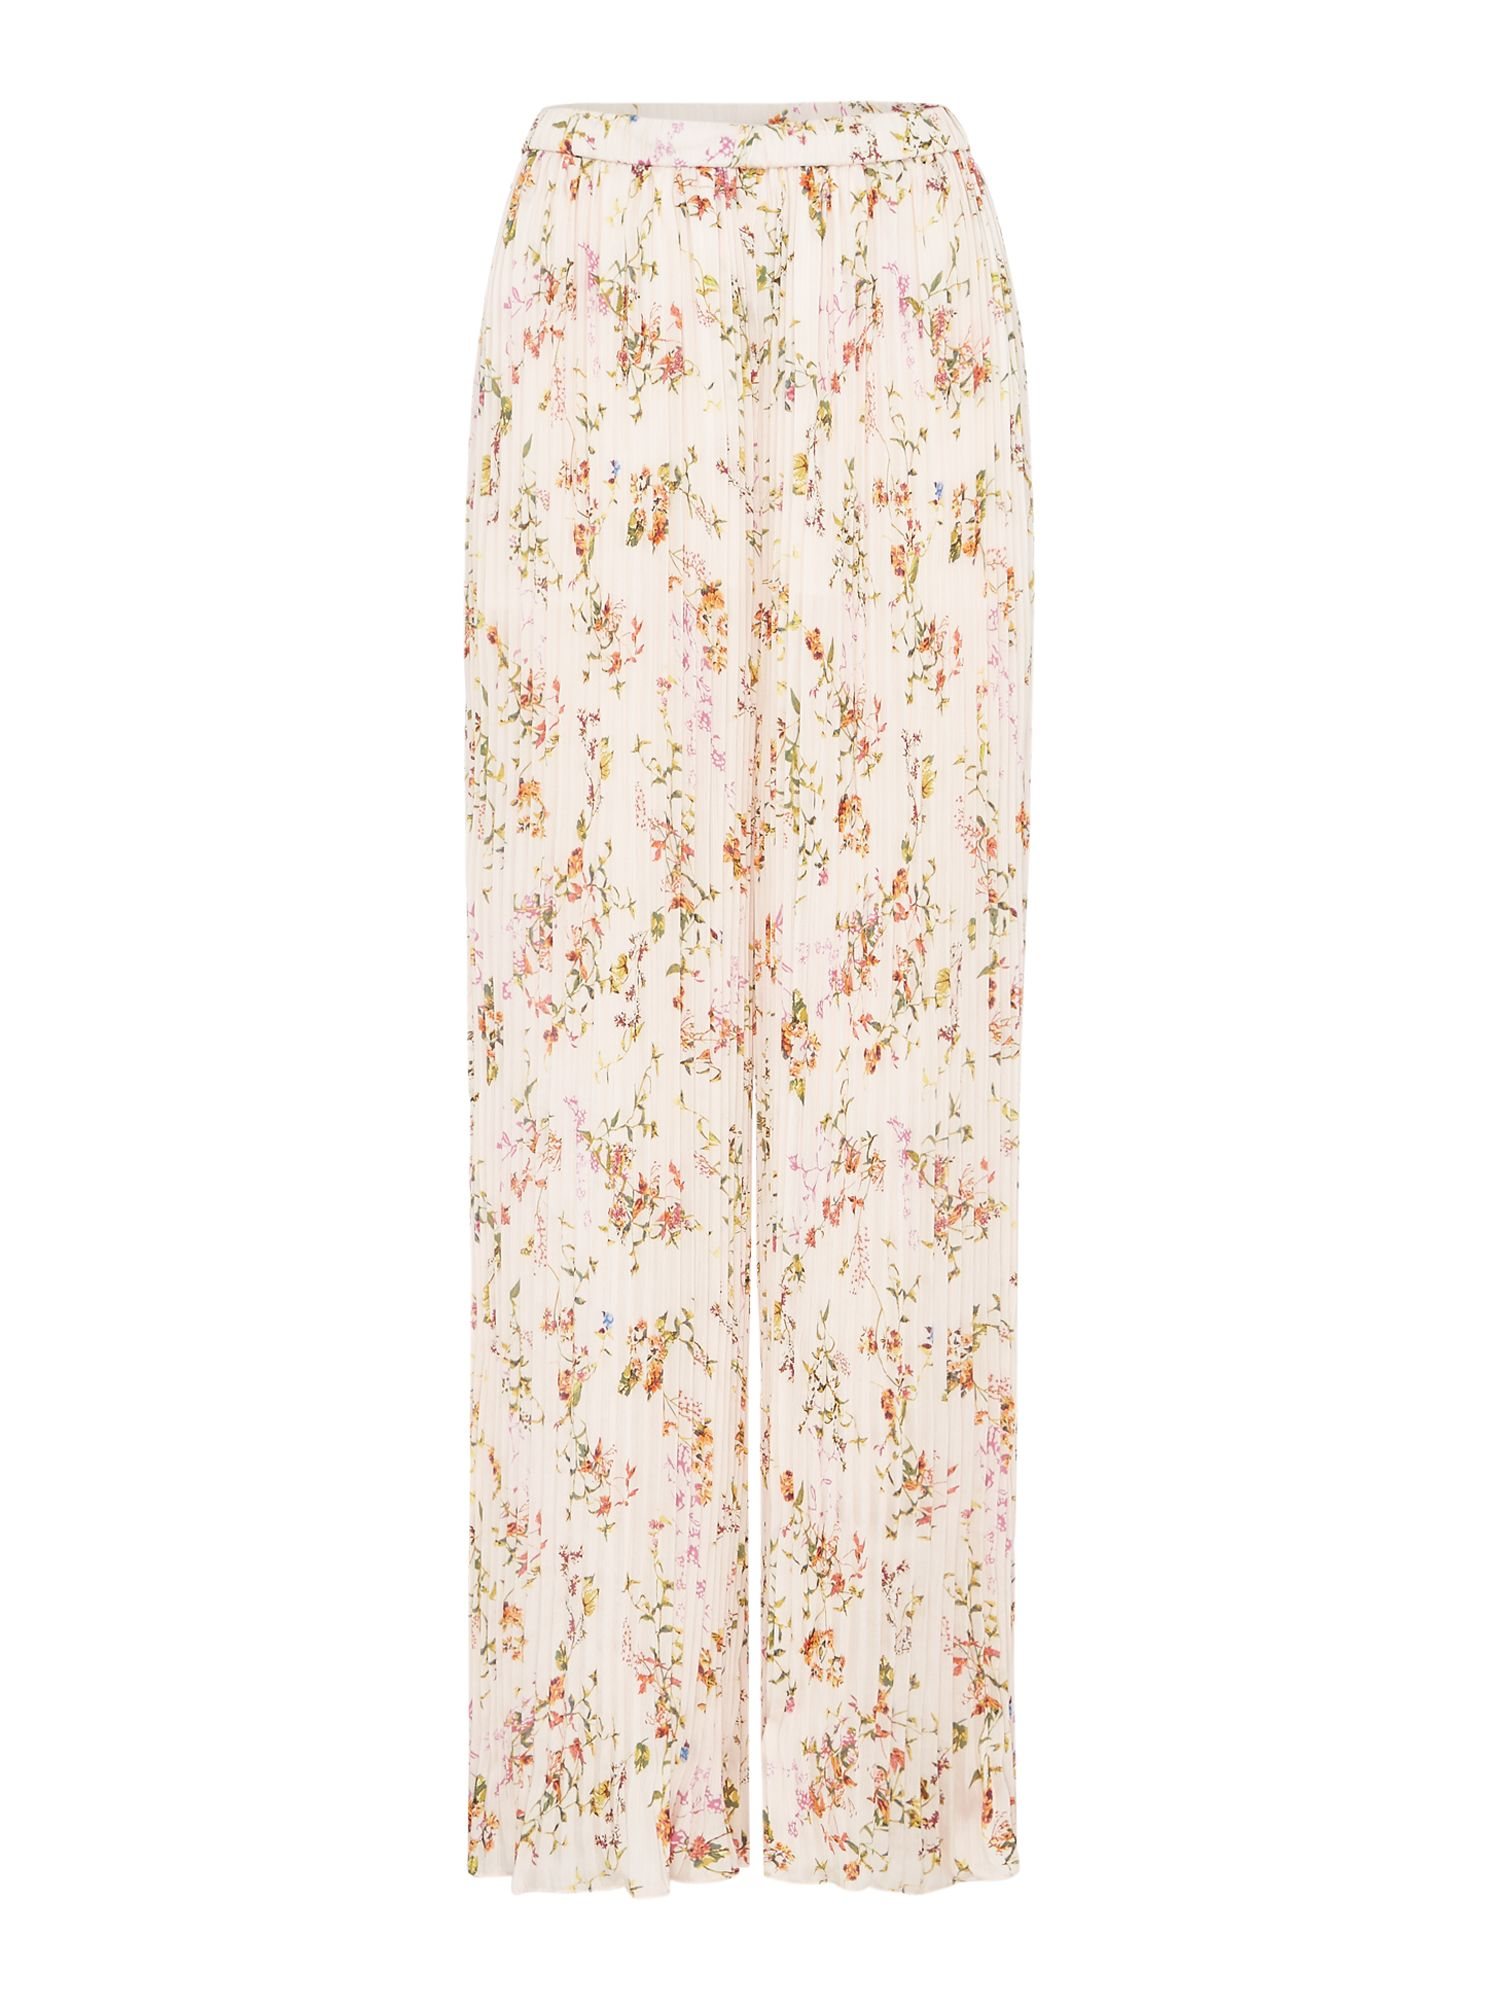 Replay Pleated Floral-Print Culottes, Multi-Coloured